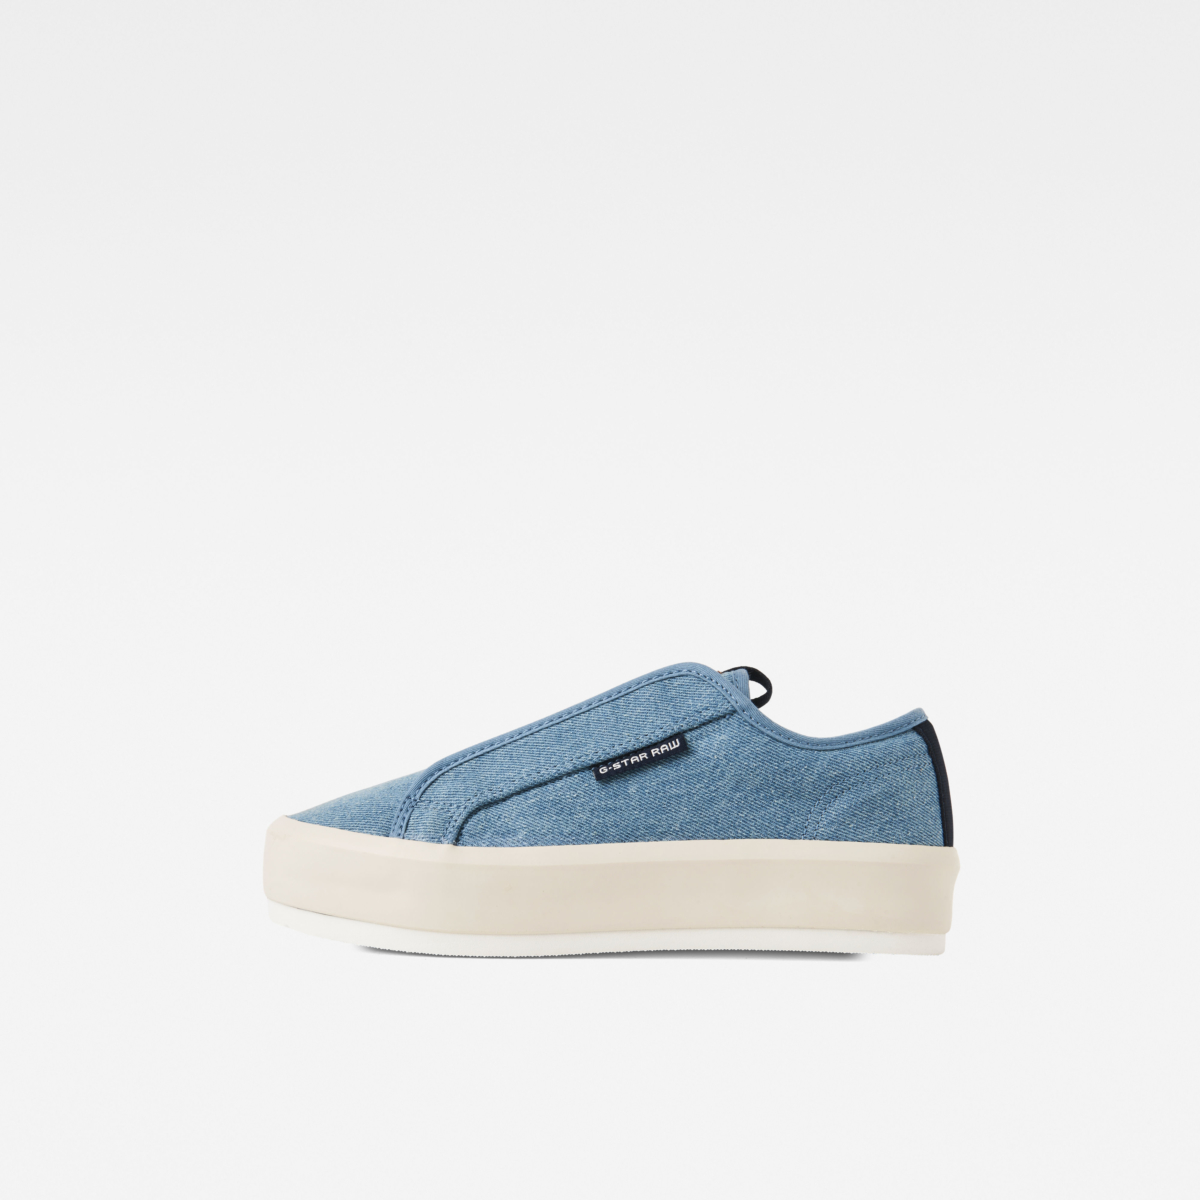 G-Star Shoes Strett Lace Up Light Blue Female Canada - GOOFASH - Womens LEATHER SHOES